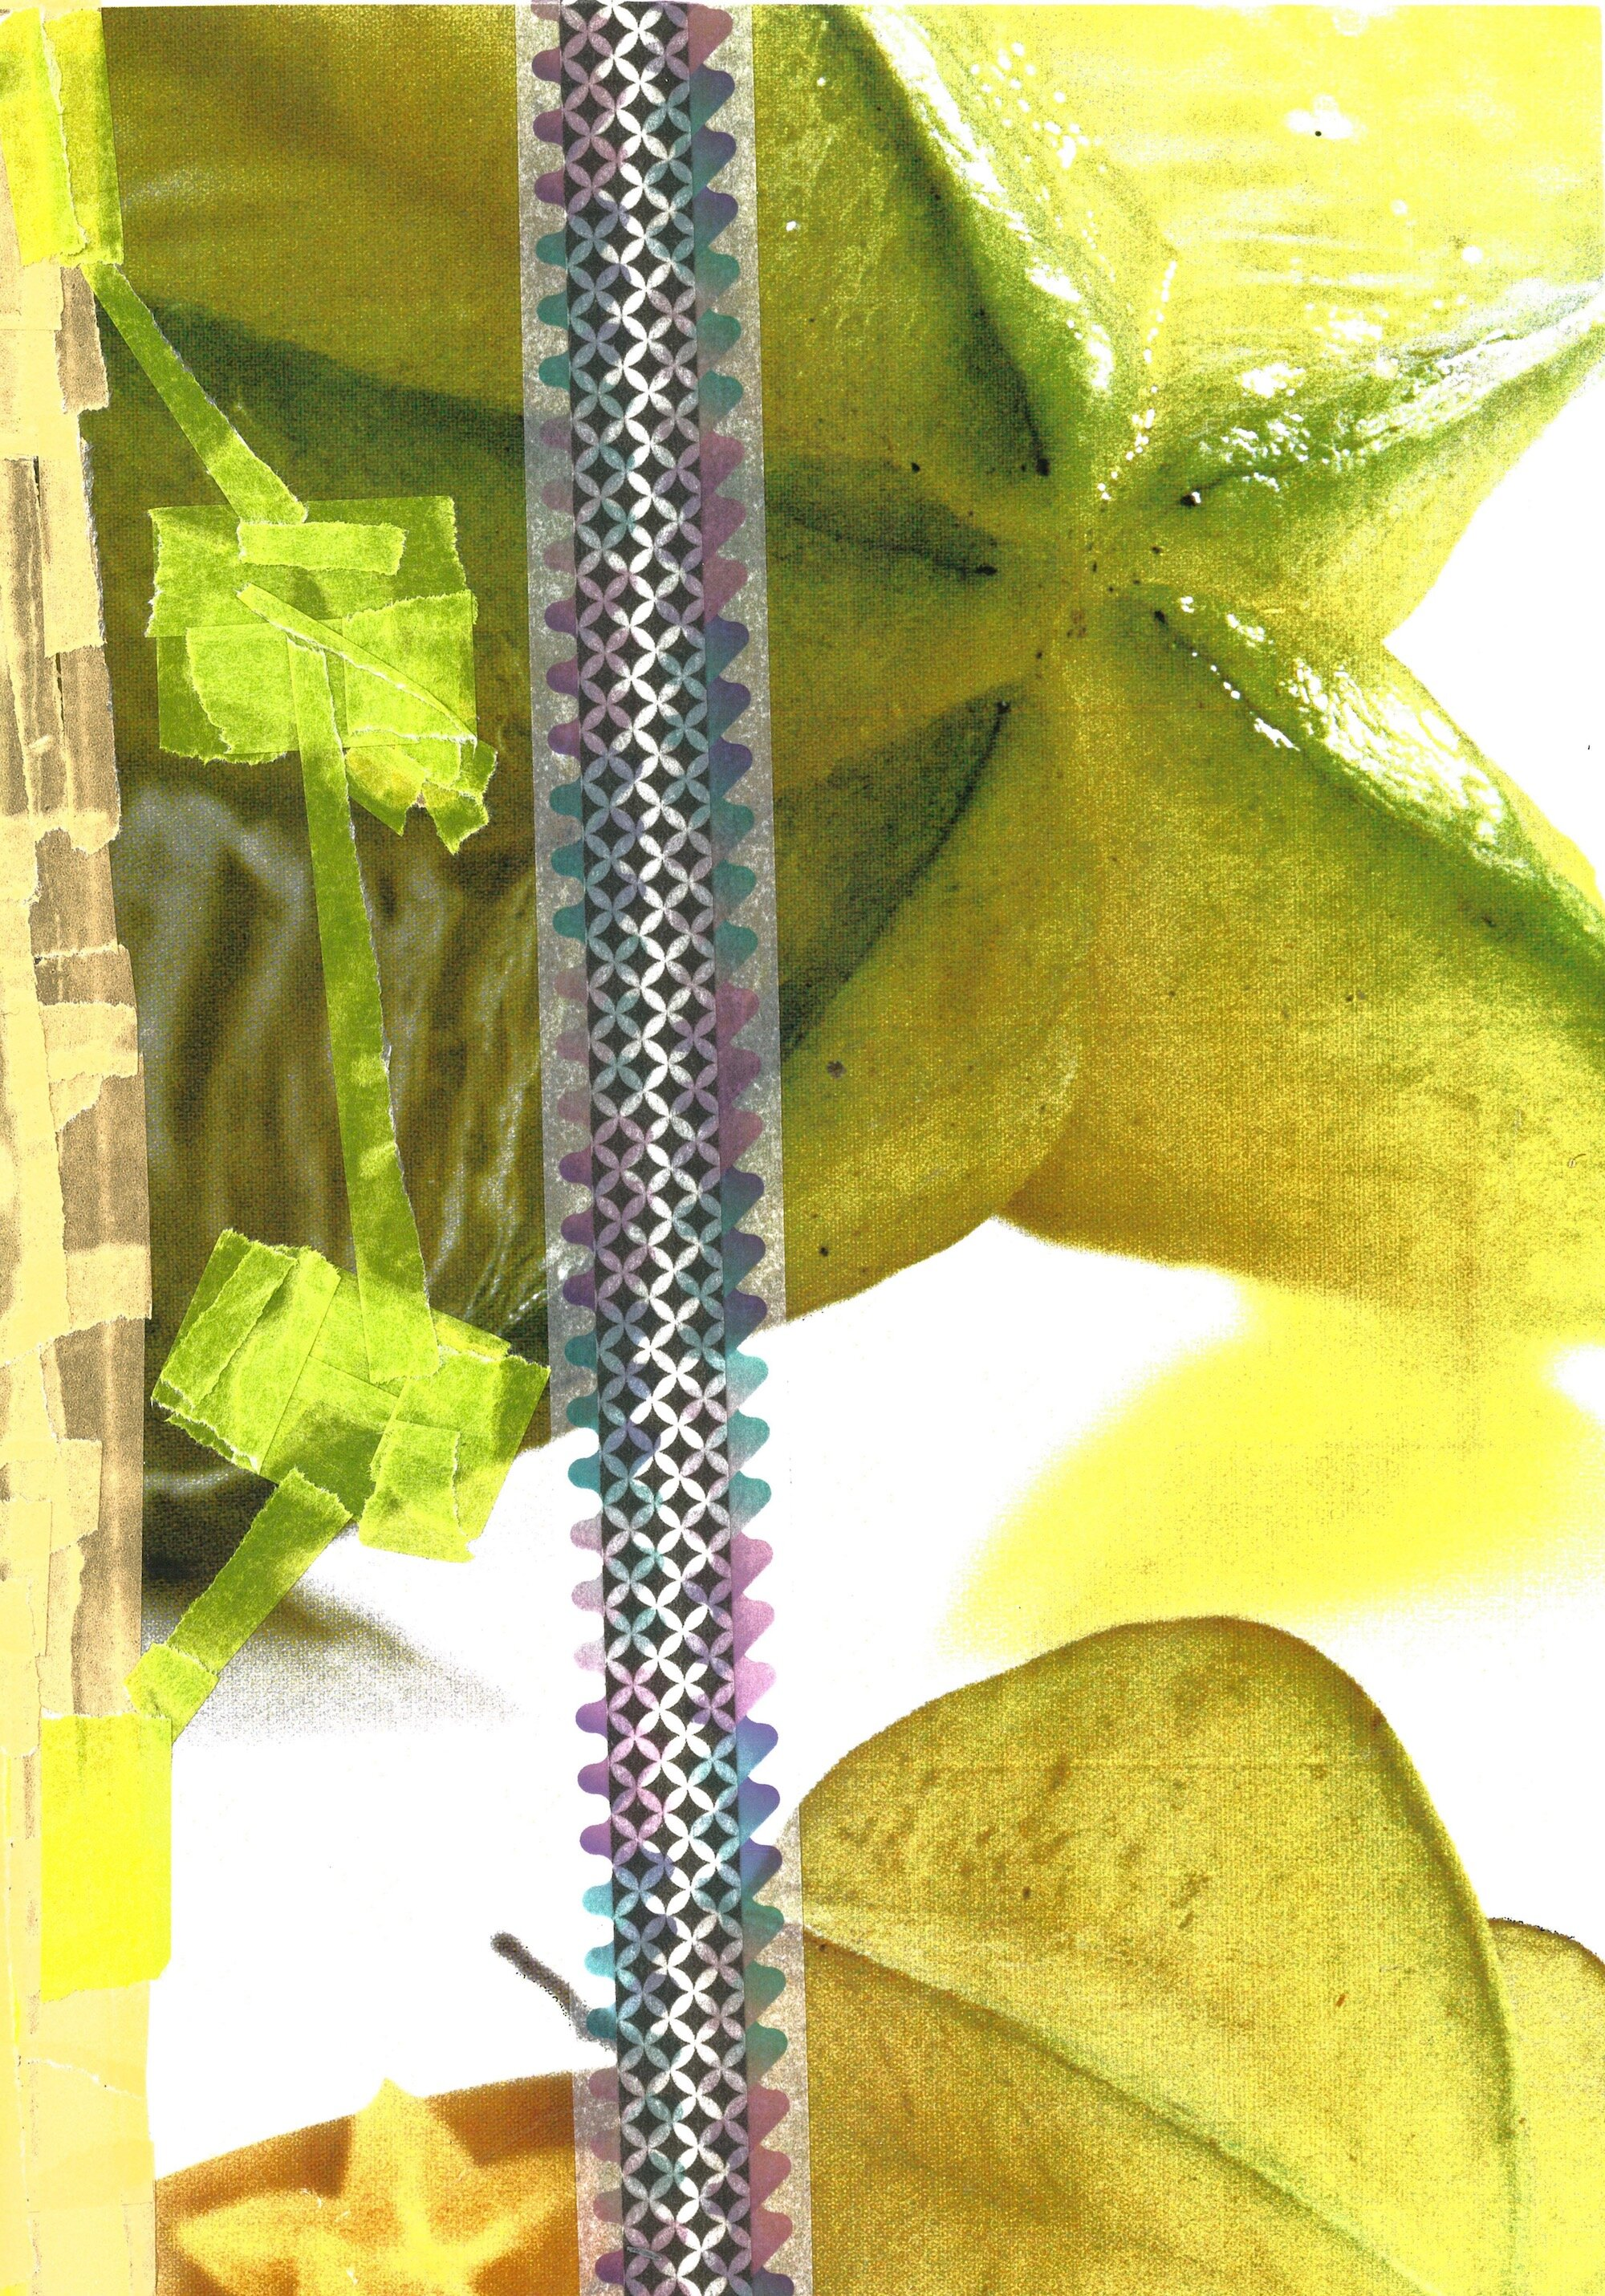 Fruited, R  paper tape, photo montage on archival paper